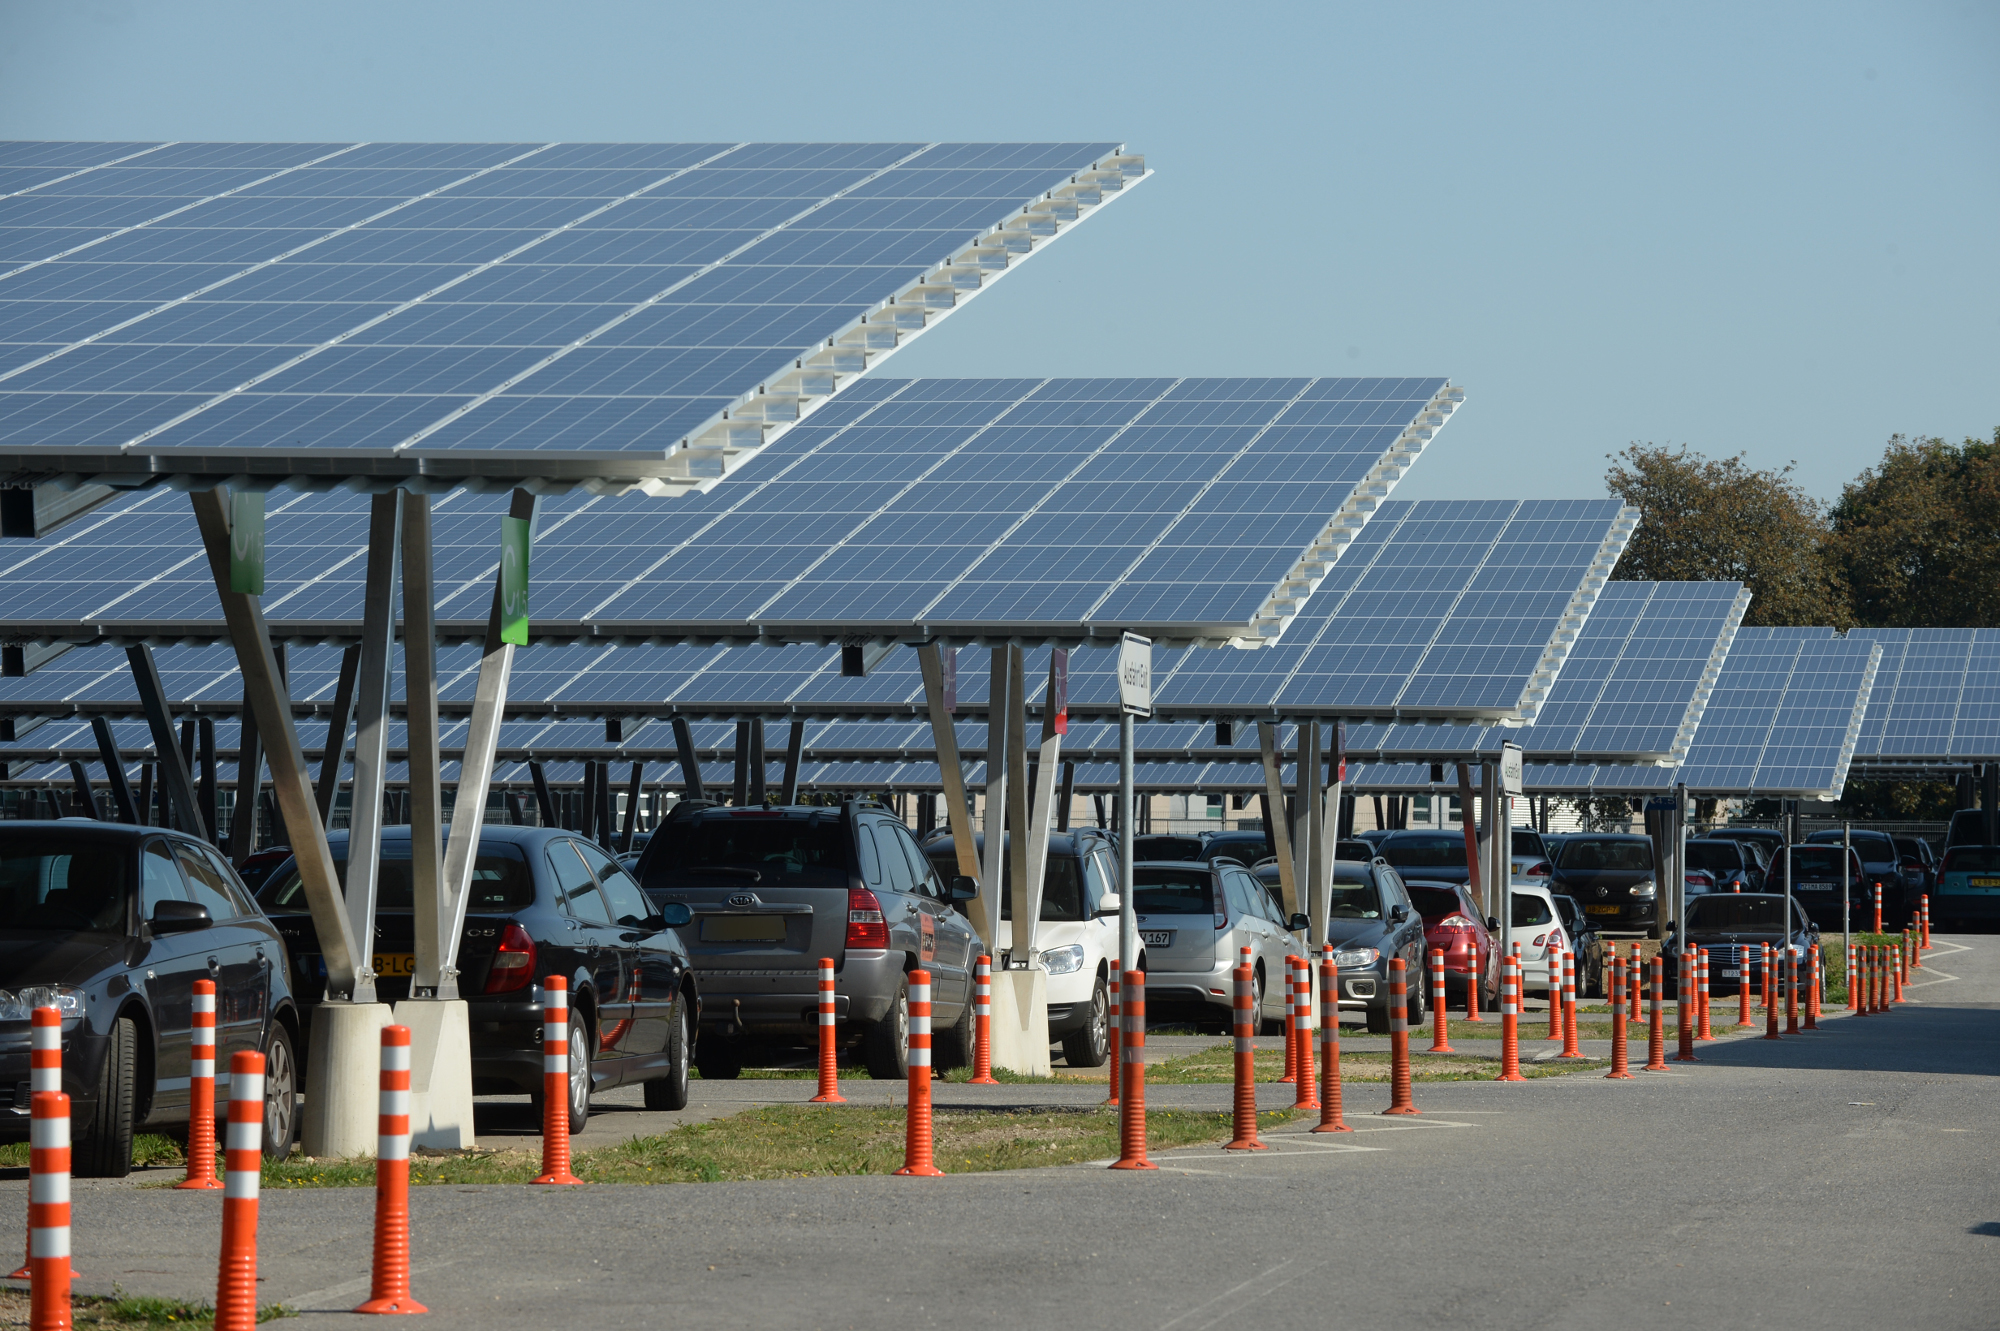 The array at Weeze Airport in North Rhine-Westphalia, Germany. Source: Trina Solar/Gottfried Evers.